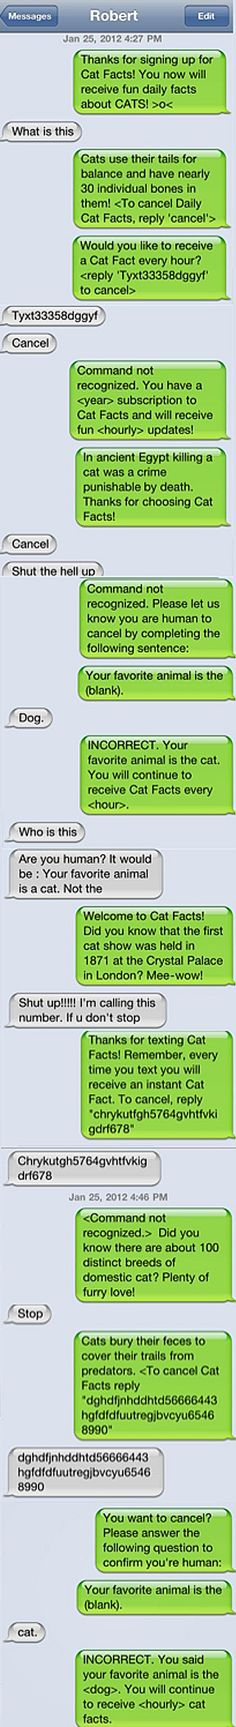 Cat Facts: Masterful Texting Prank. Haha, if only I could figure out how to do this without knowing it was me ;)